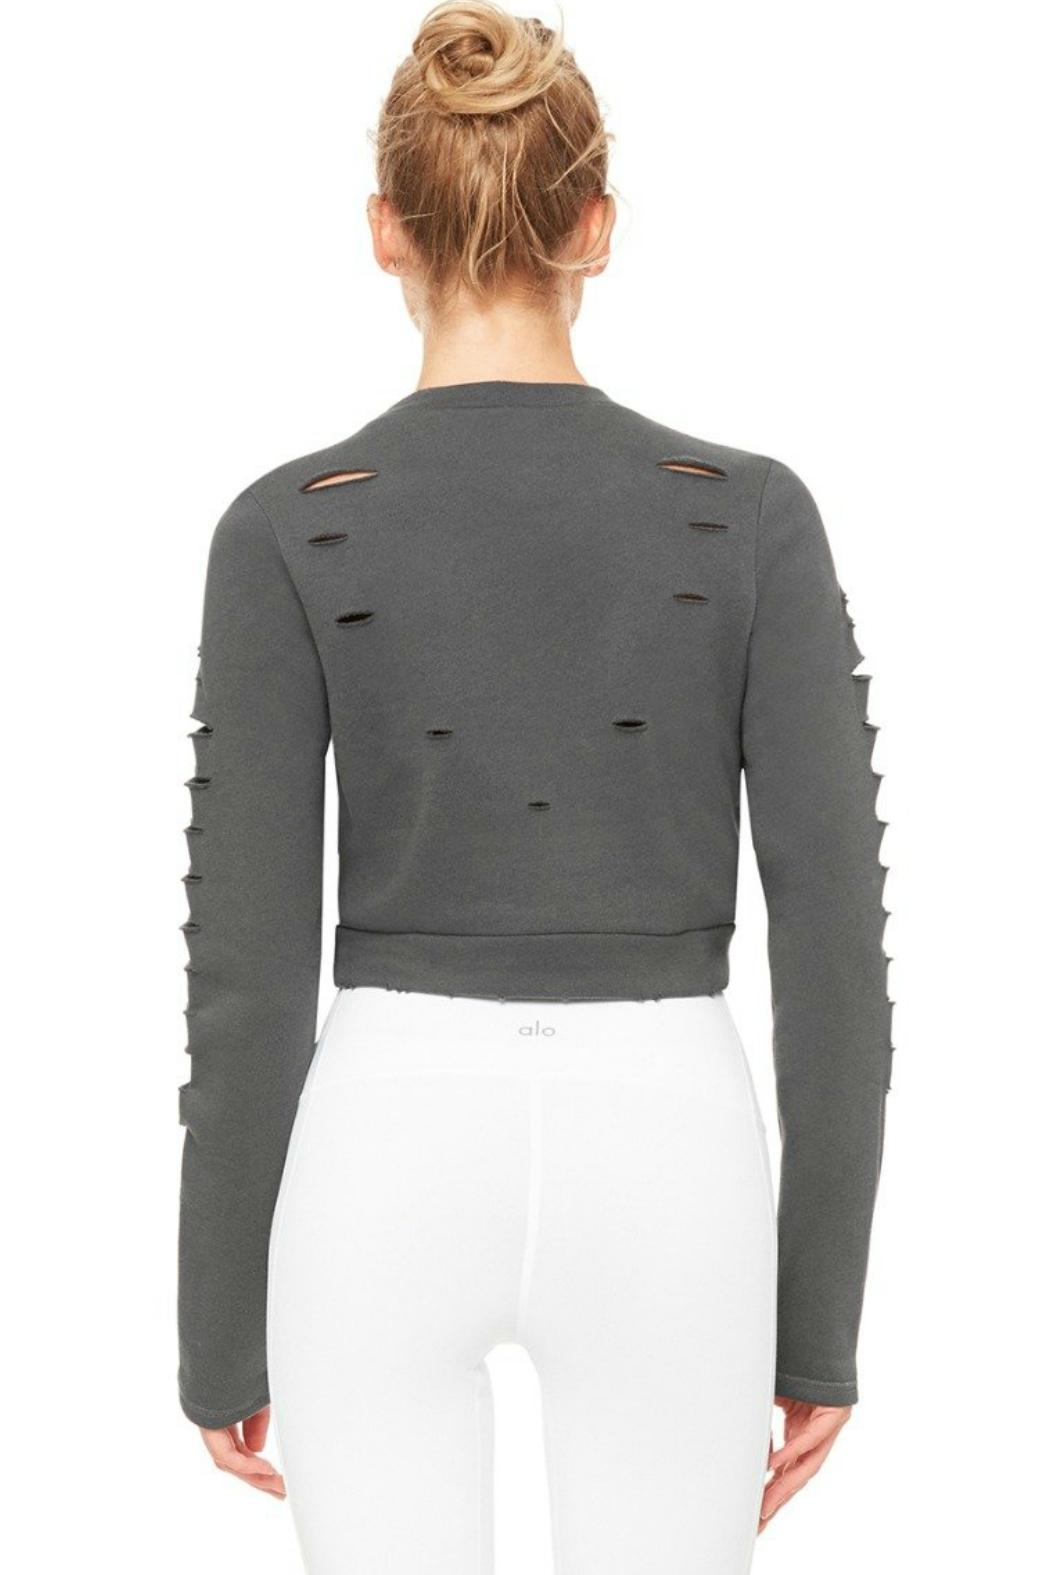 ALO Yoga Ripped Warrior Top - Side Cropped Image